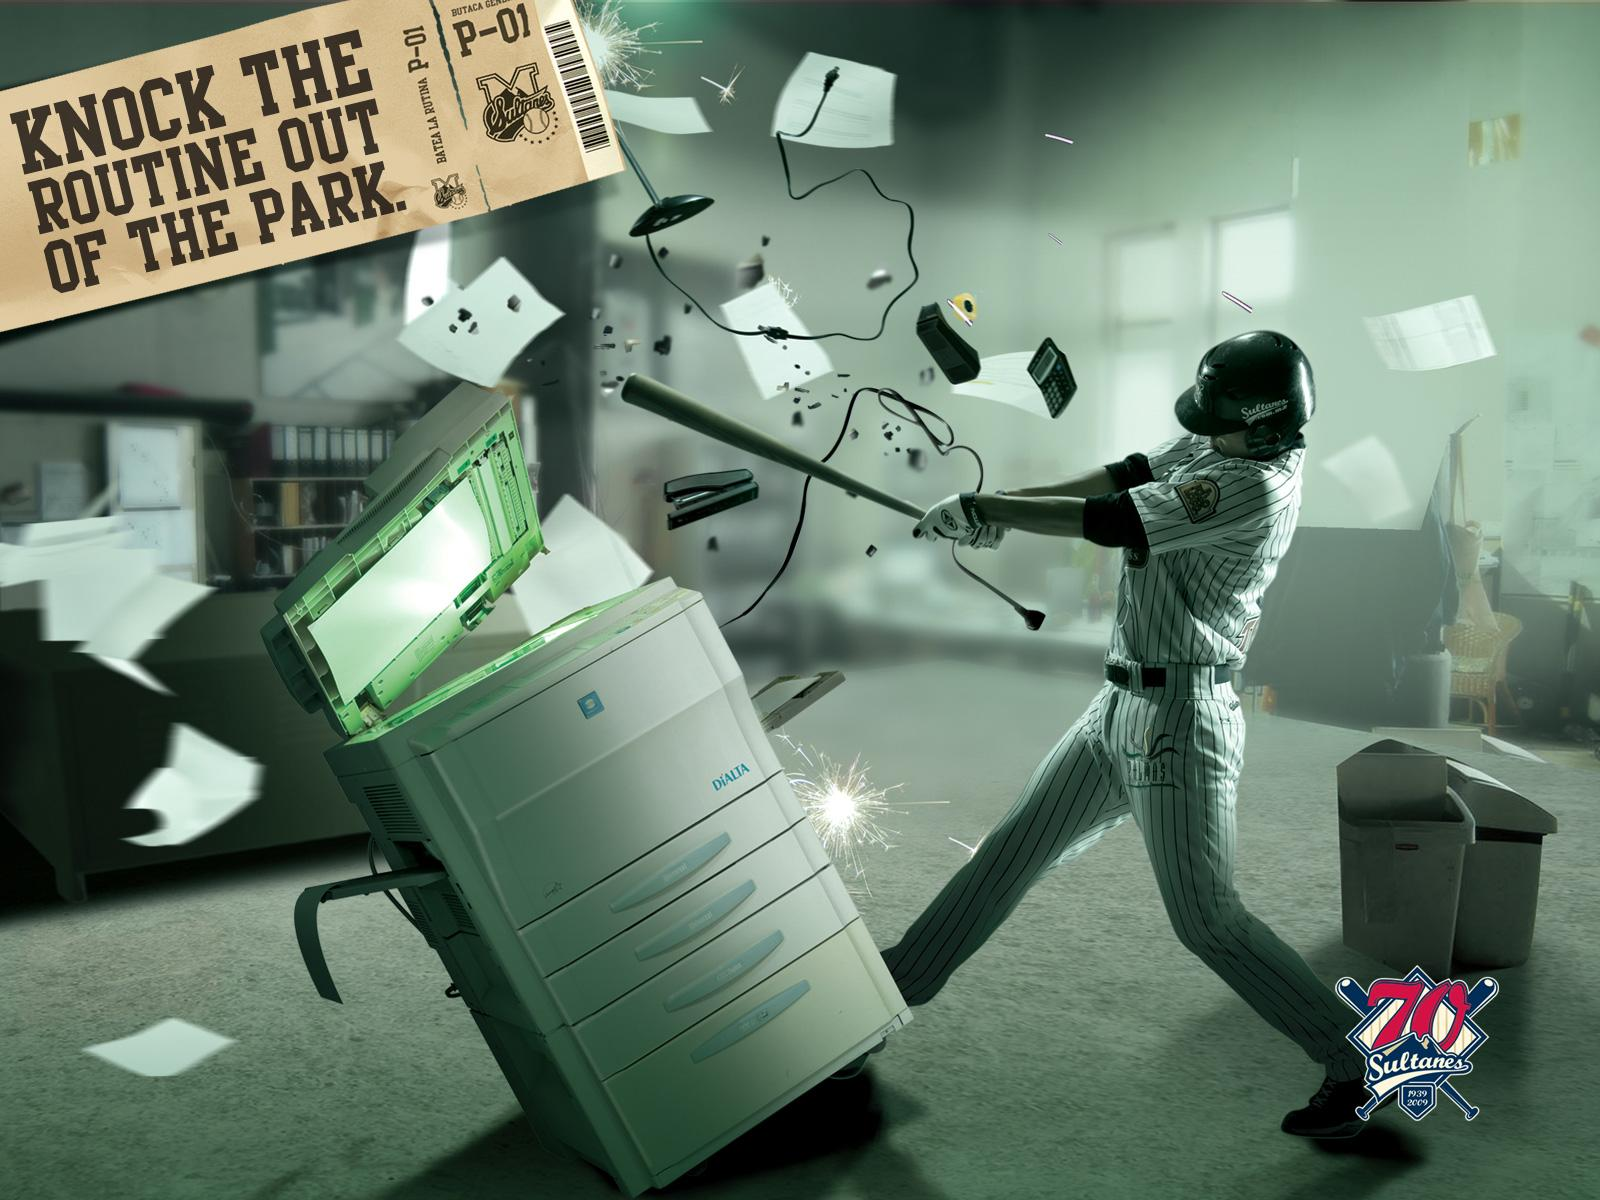 Sultanes Print Ad -  Knock the Routine out of the Park, Office